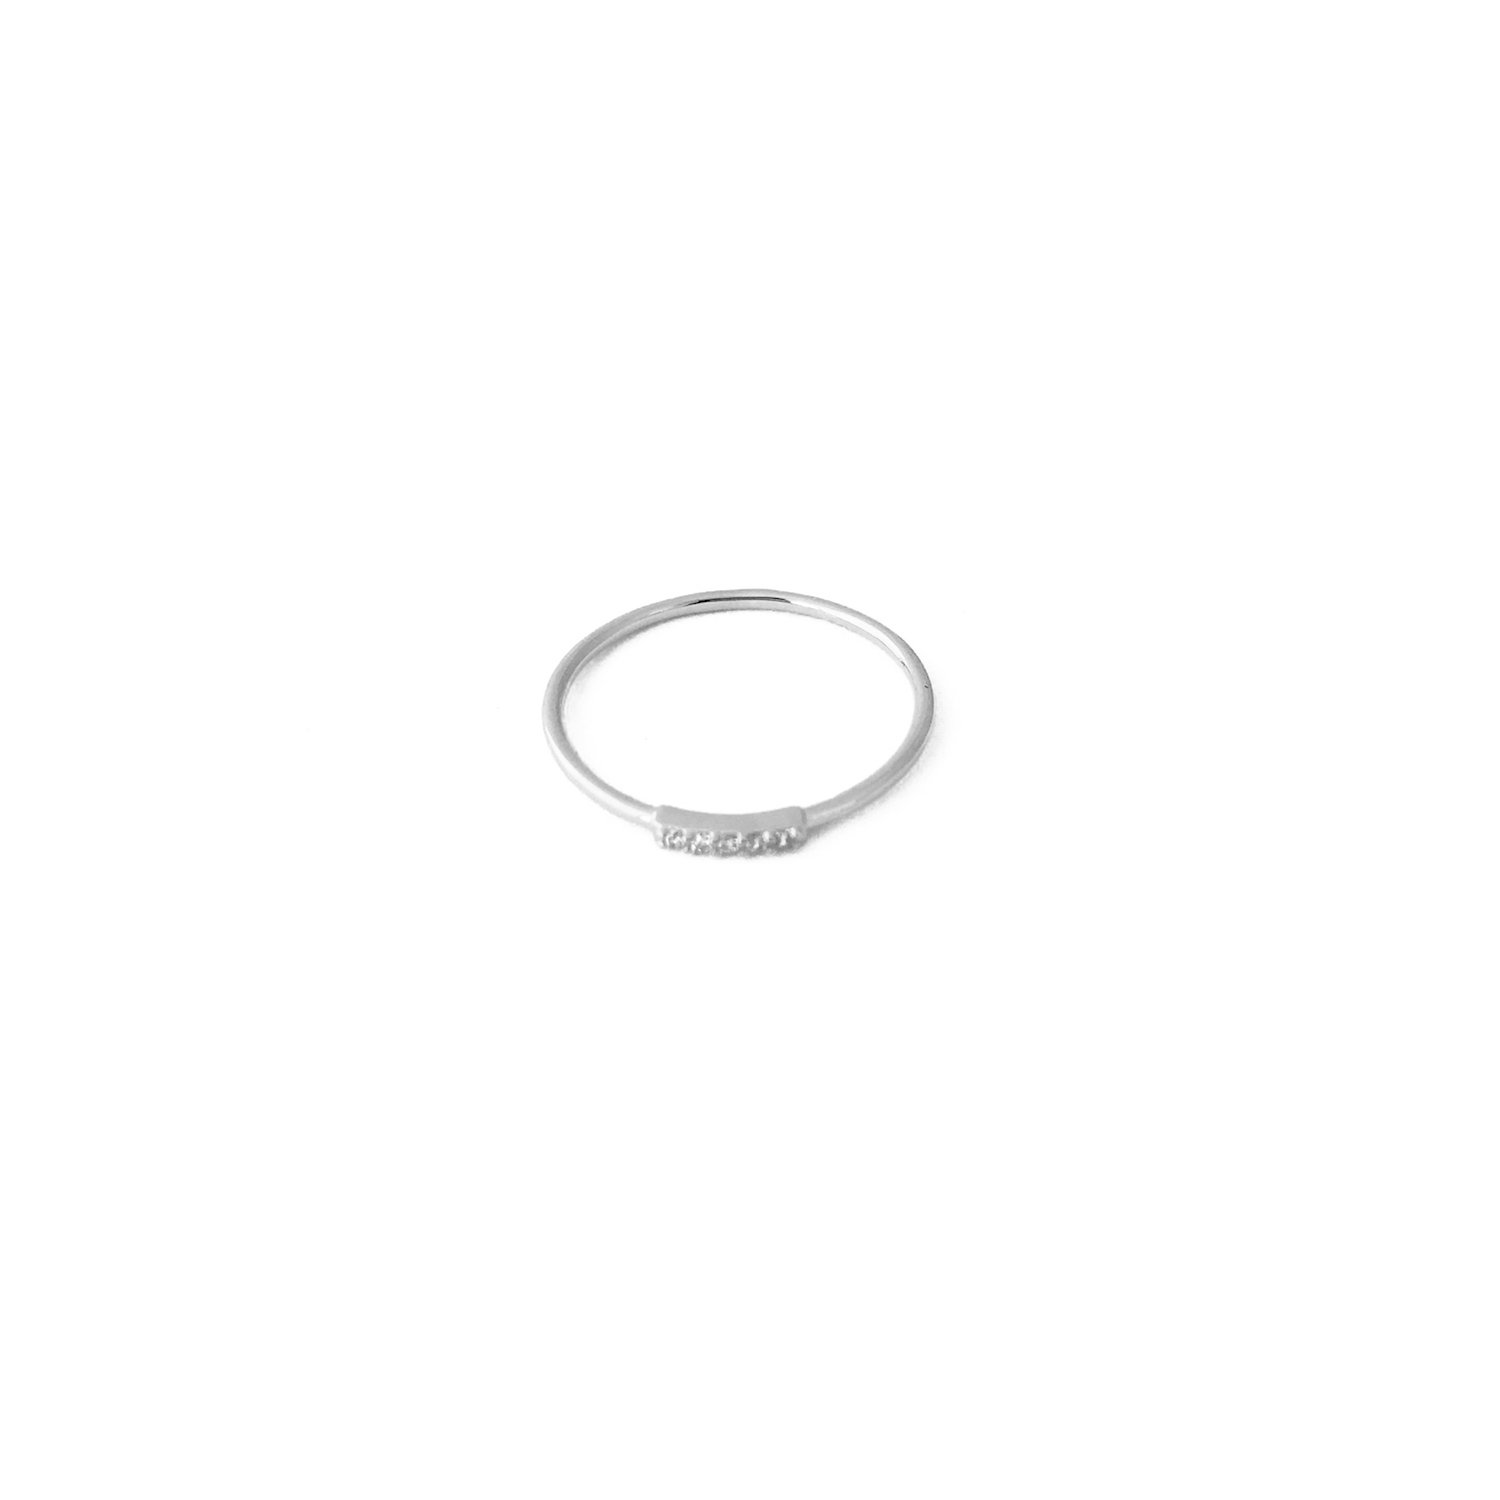 HONEYCAT Mini Crystal Row Ring in Sterling Silver Plate | Minimalist, Delicate Jewelry (Silver 8) by HONEYCAT (Image #8)